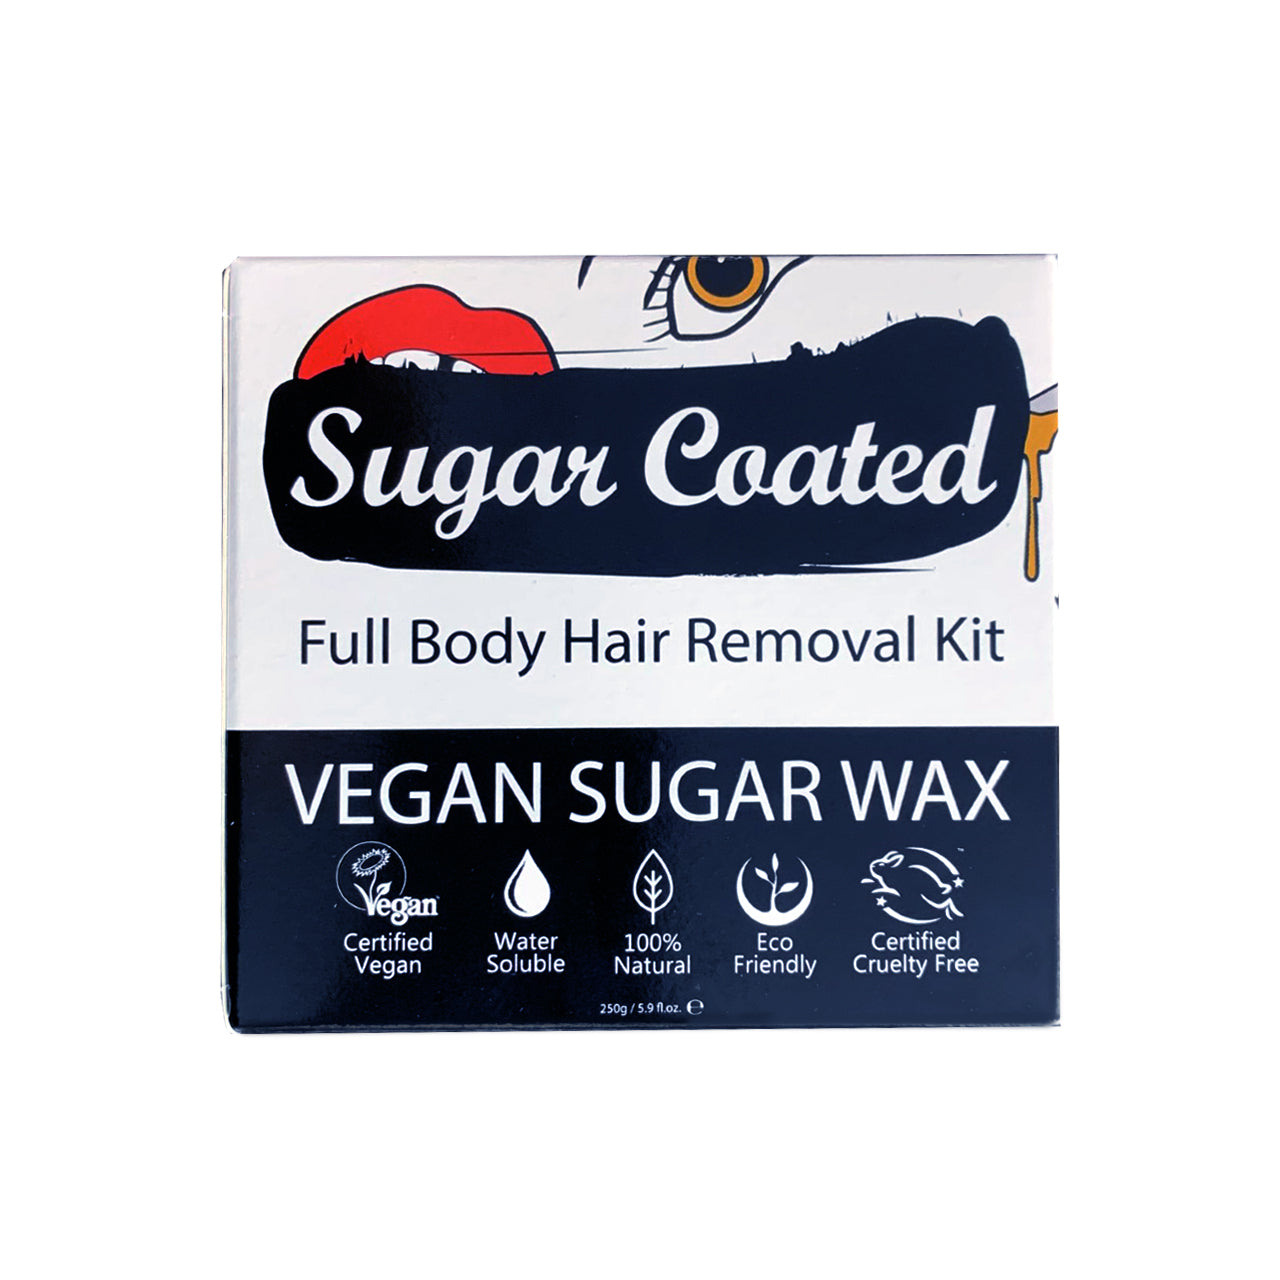 Sugar Coated Full Body Hair Removal Kit (front). Icons showing benefits. Vegan, water-soluble, natural, eco-friendly, cruelty-free